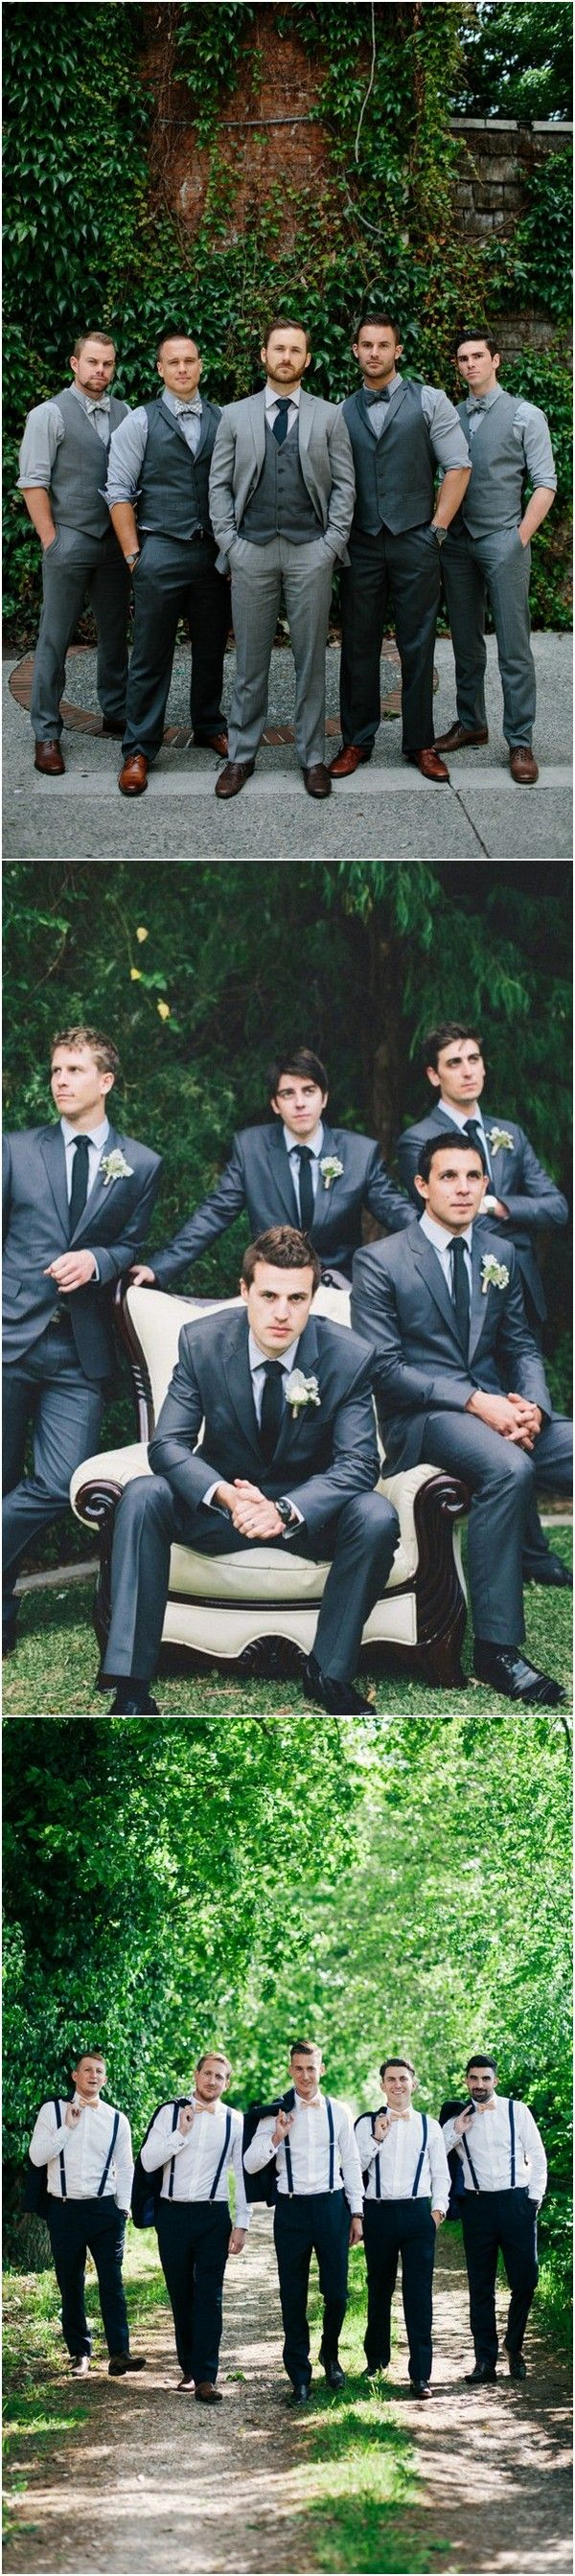 awesome wedding photo ideas with groomsmen